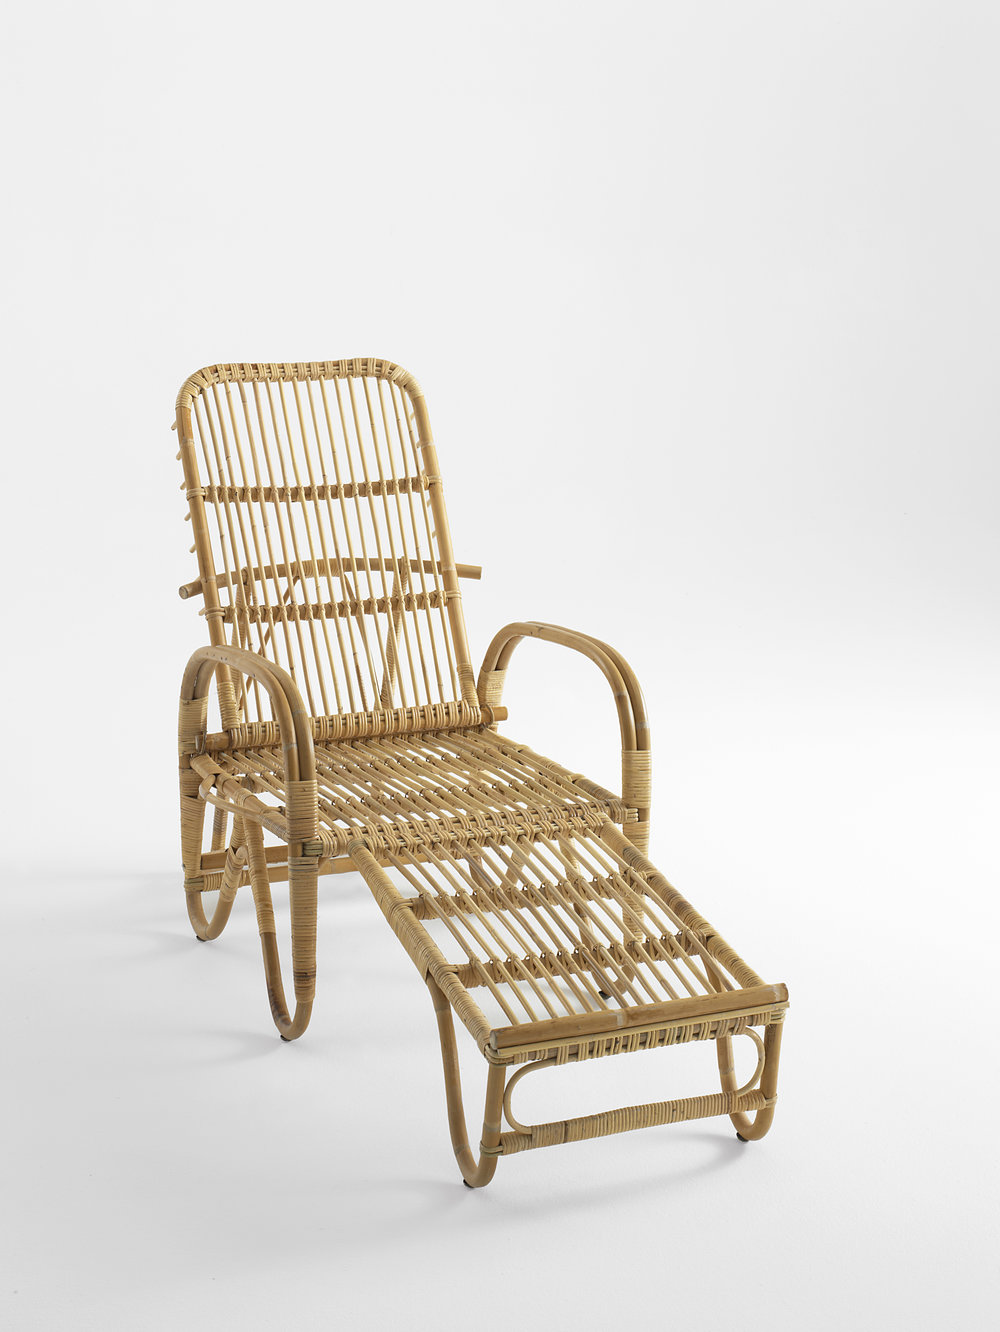 Liggestolen rattan deck chair